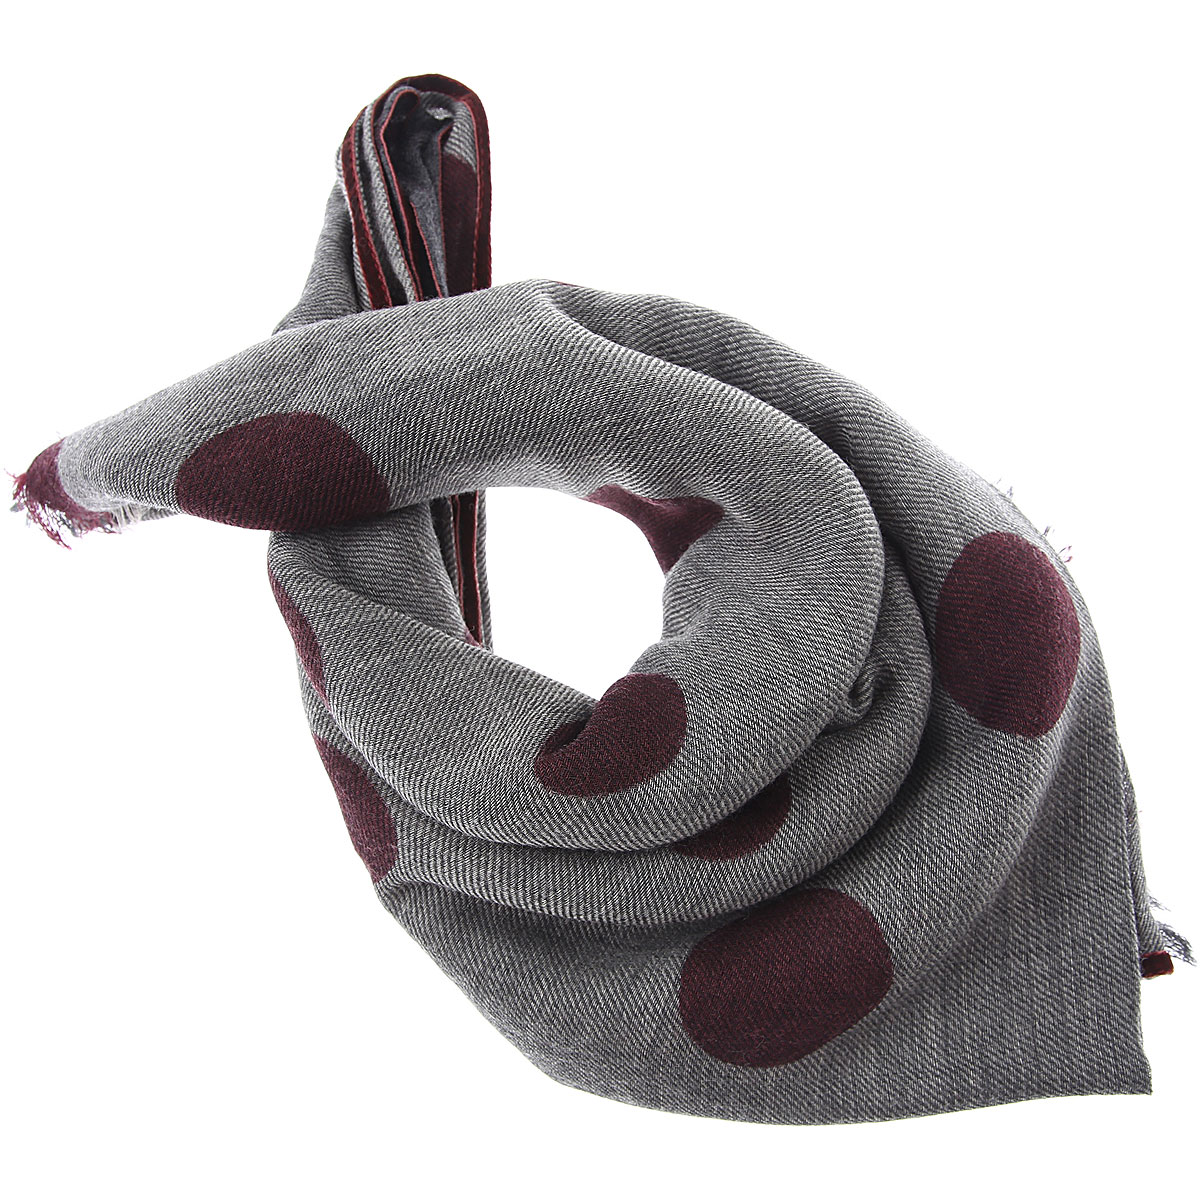 032c Scarf for Women On Sale, Brownish-grey, Wool, 2019